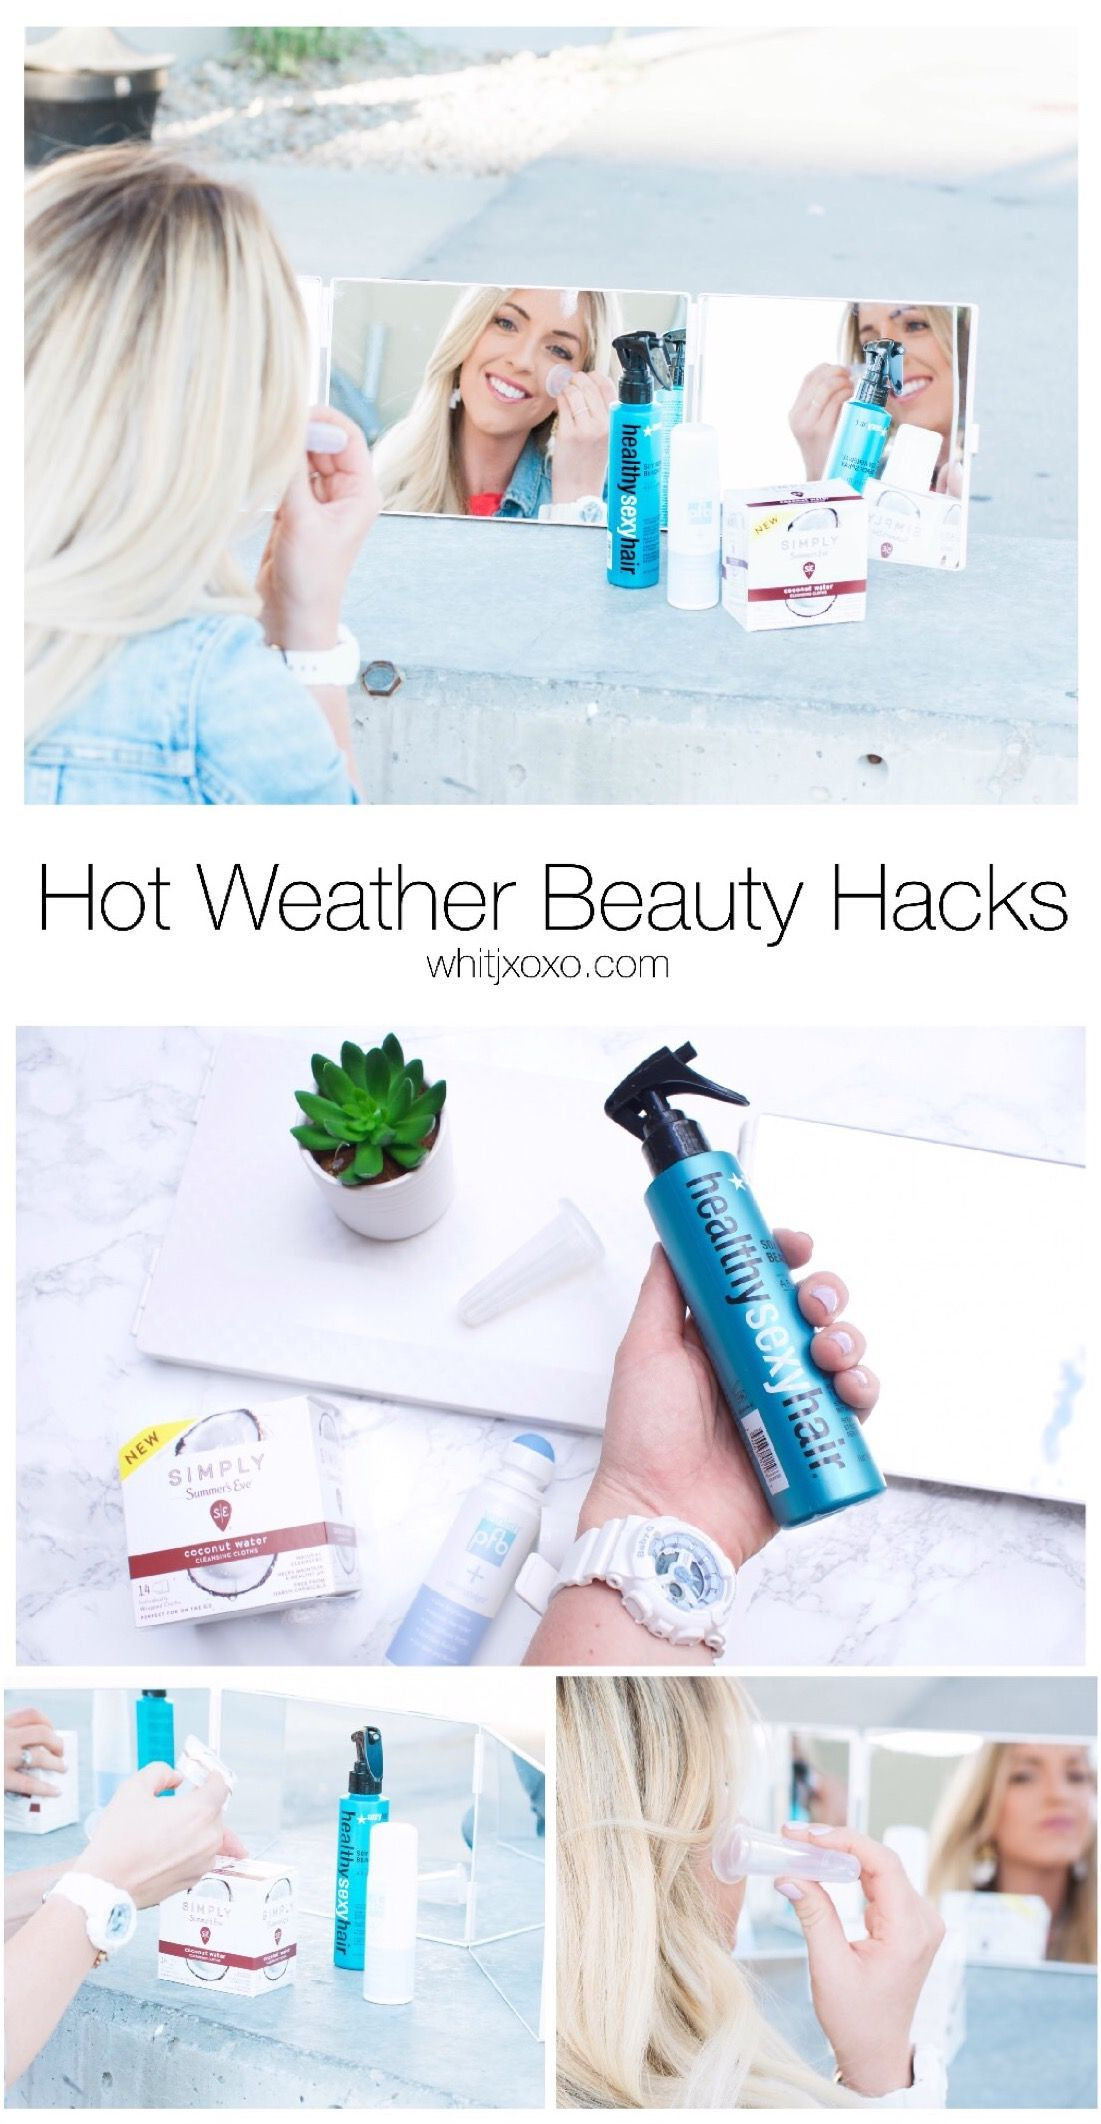 6 amazing hot weather beauty hacks to make your life and beauty routine a breeze in this heat! The more convenient the product- the better! whitjxoxo.com